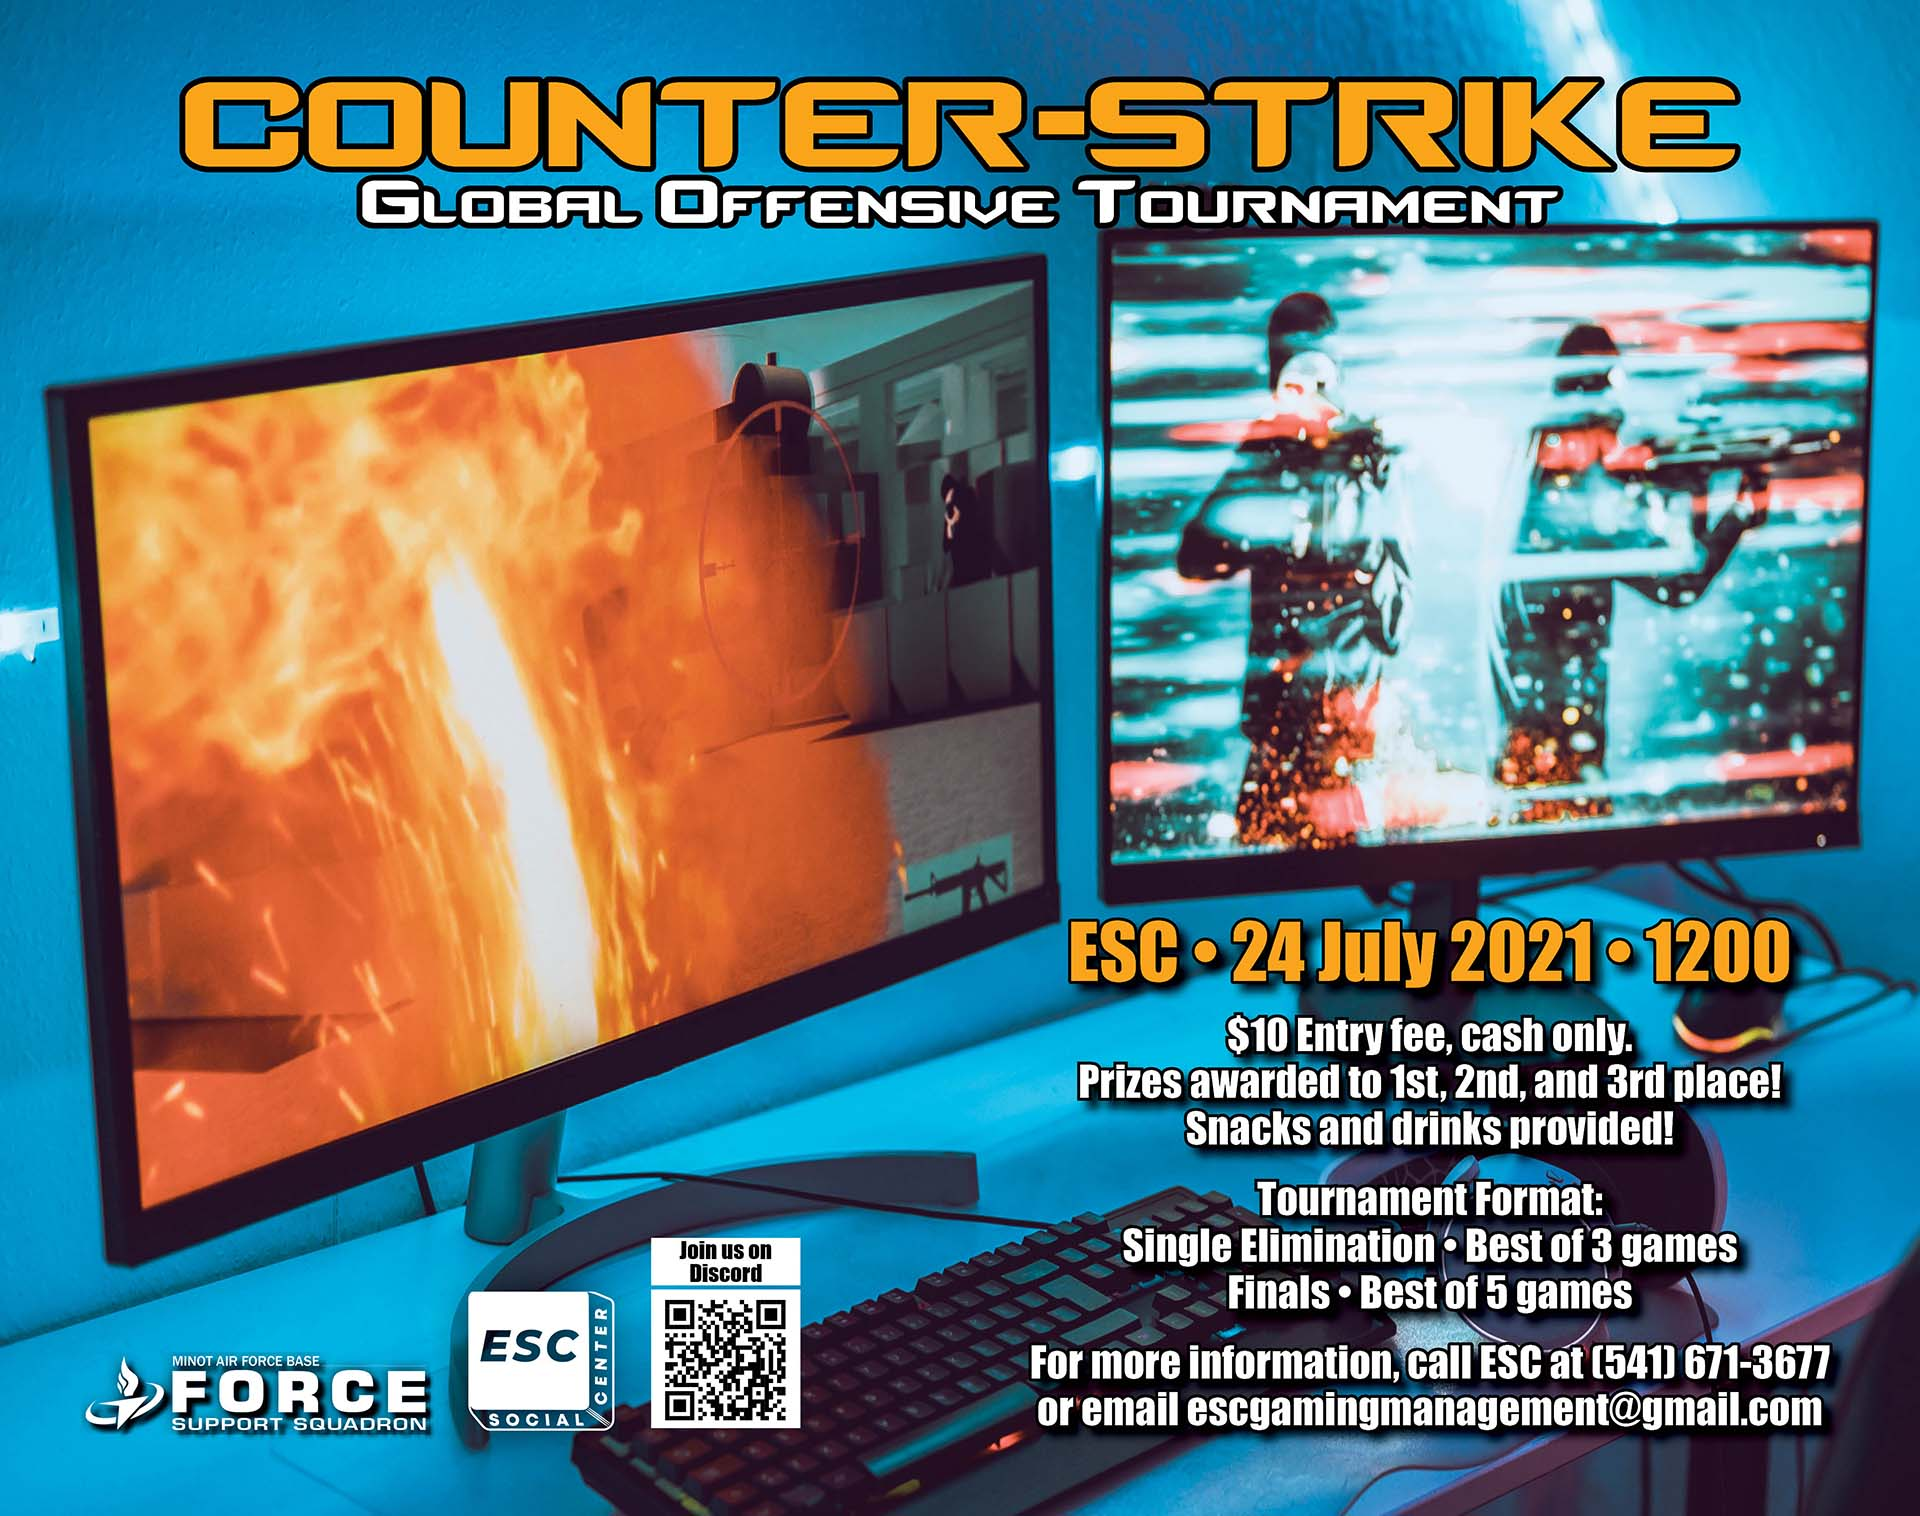 Counter-Strike Global Offensive Tournament